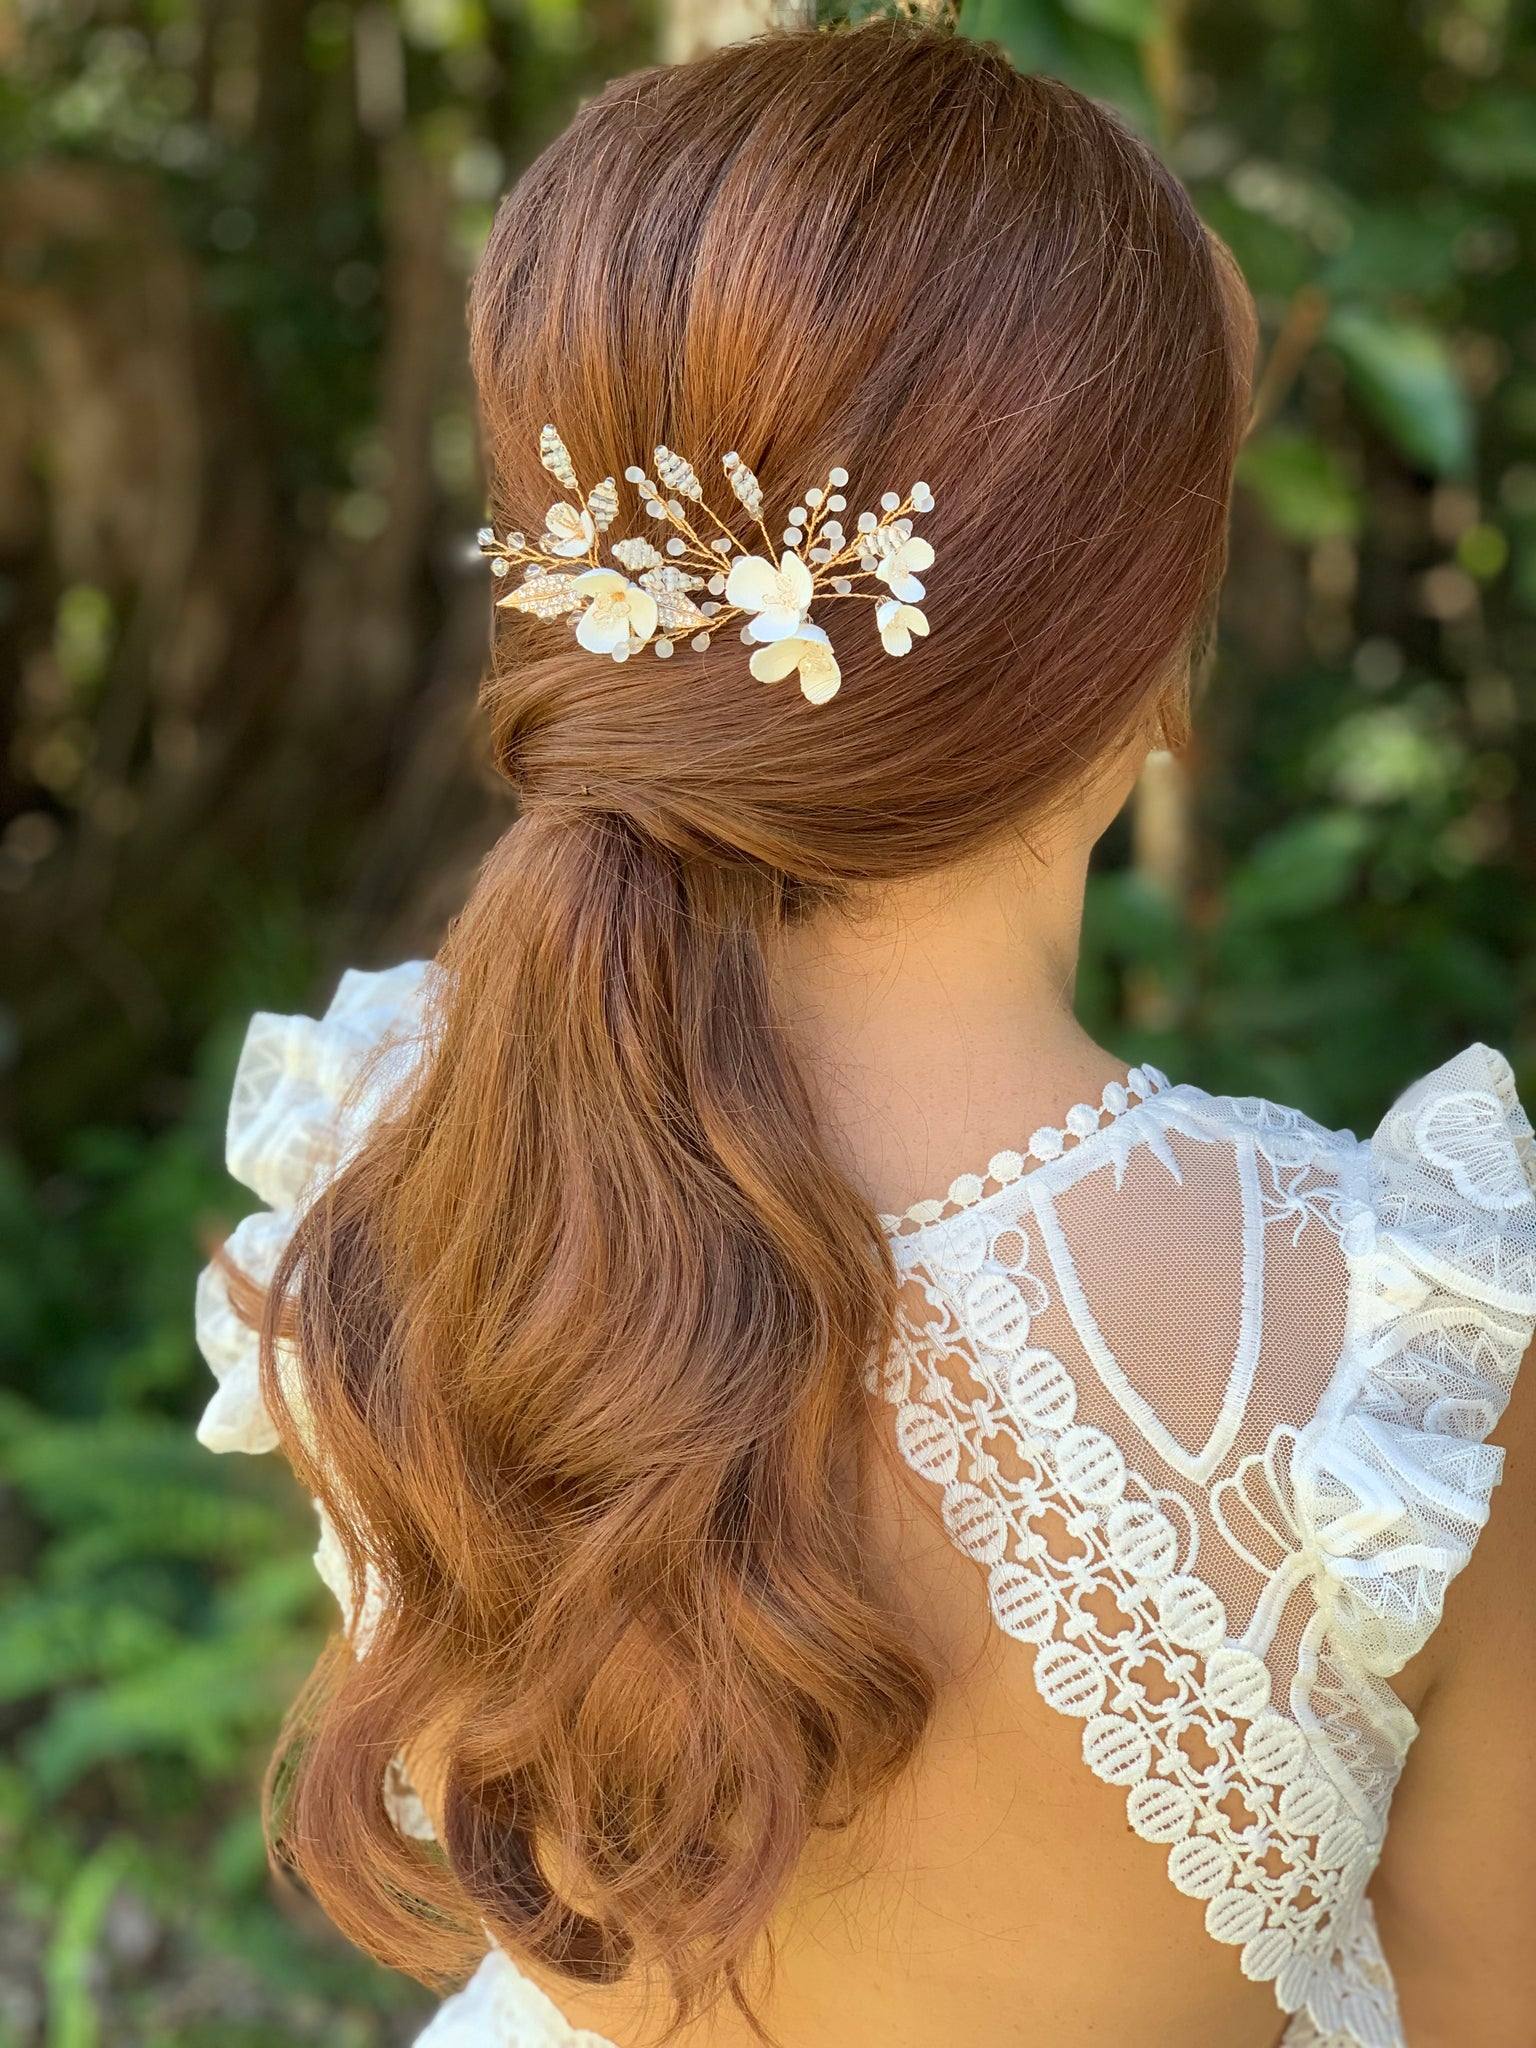 Low volume ponytail with two gold bridal hair pins with white flowers